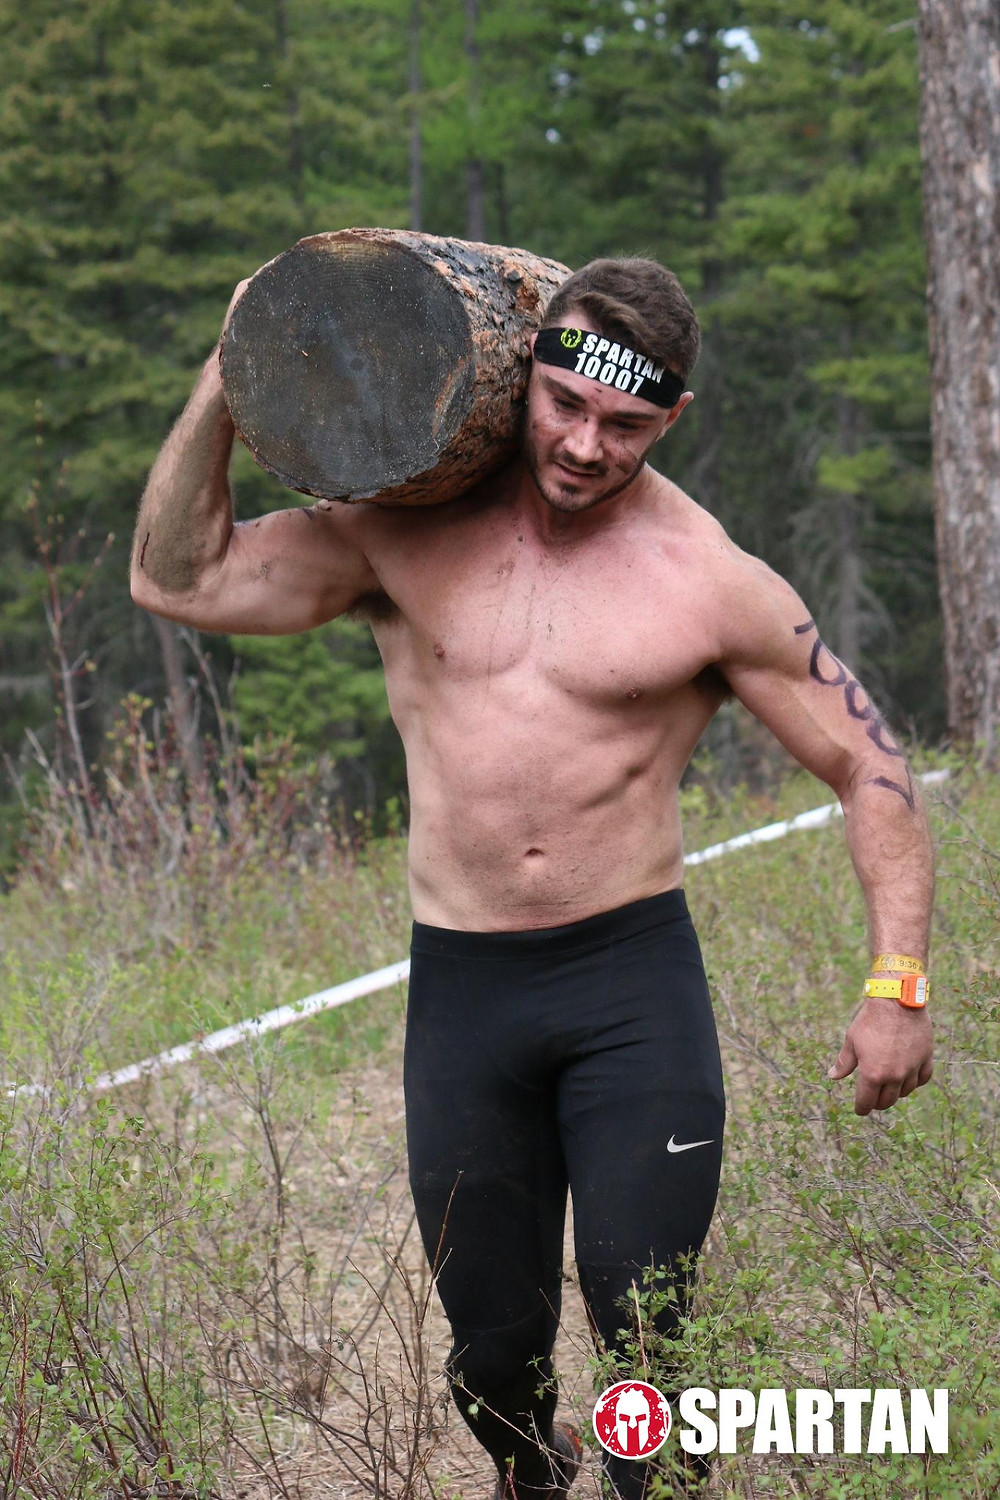 Bryce boepple carrying log during montana spartan race